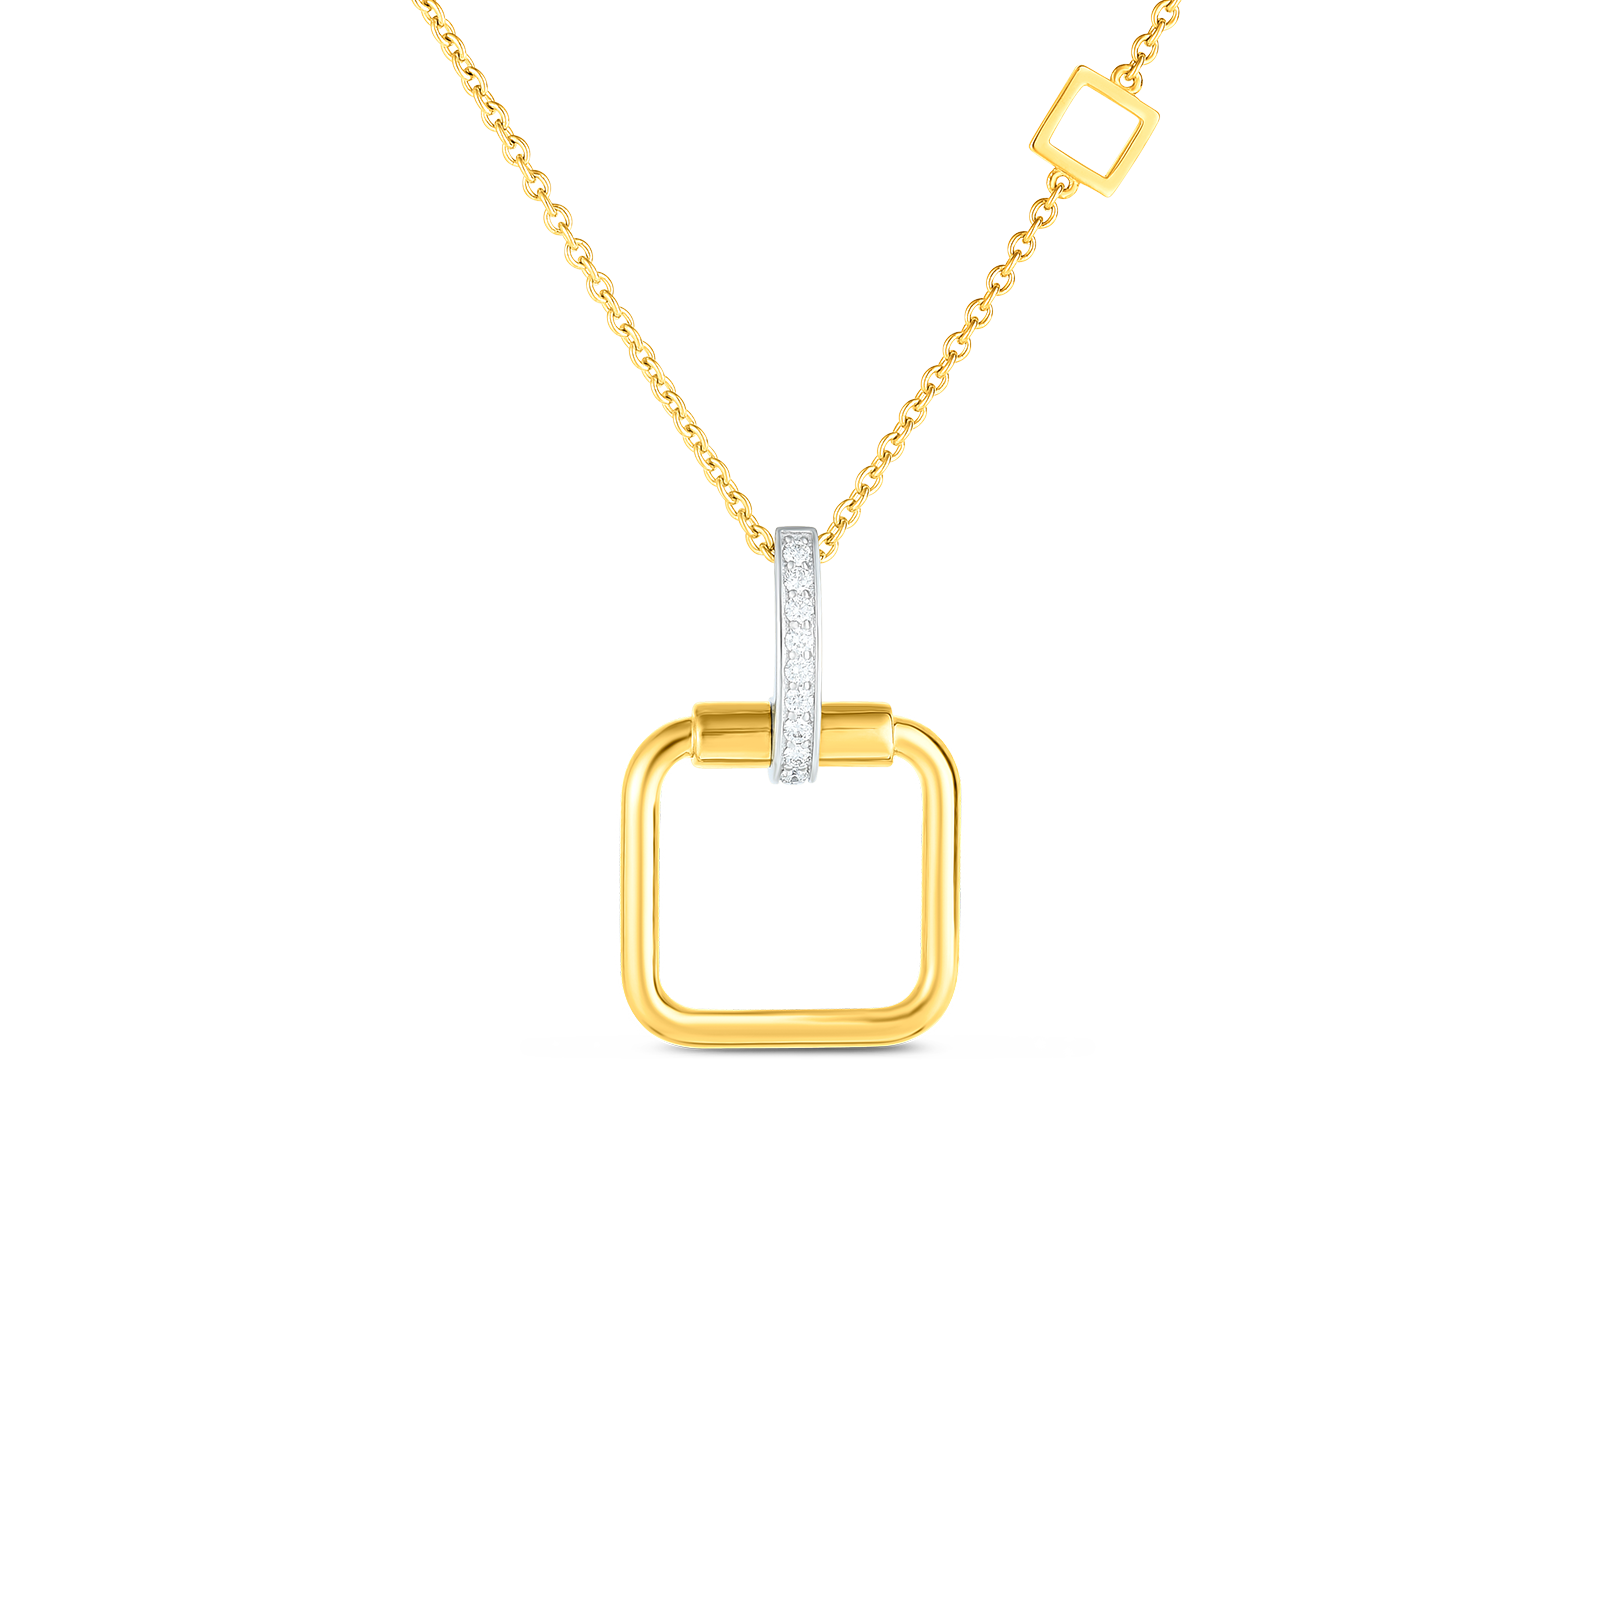 18k small square pendant with diamond accent on chain